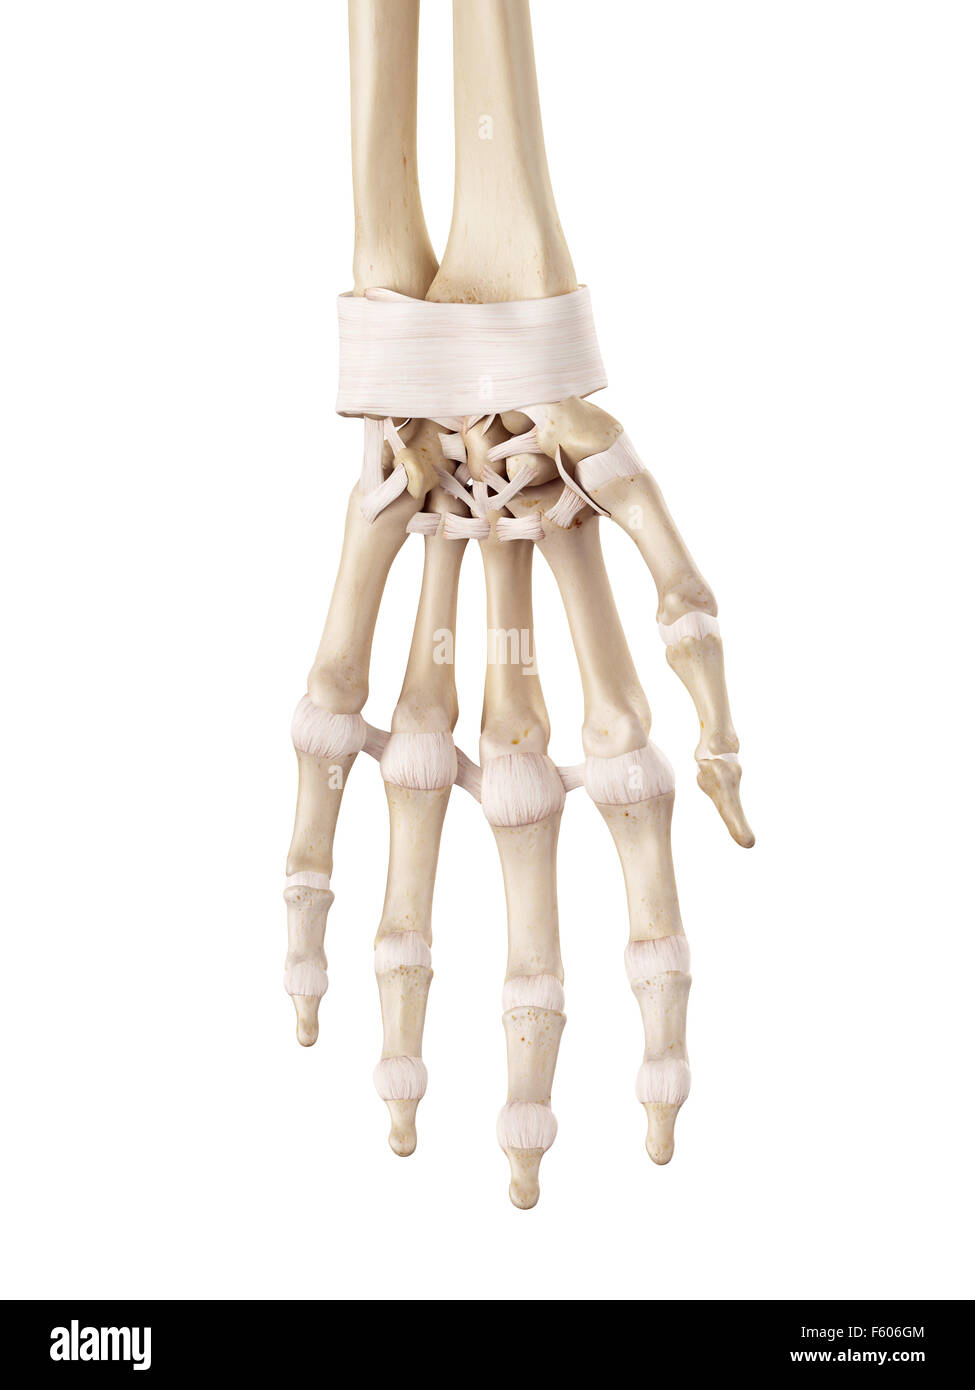 Medical Accurate Illustration Of The Hand Ligaments Stock Photo